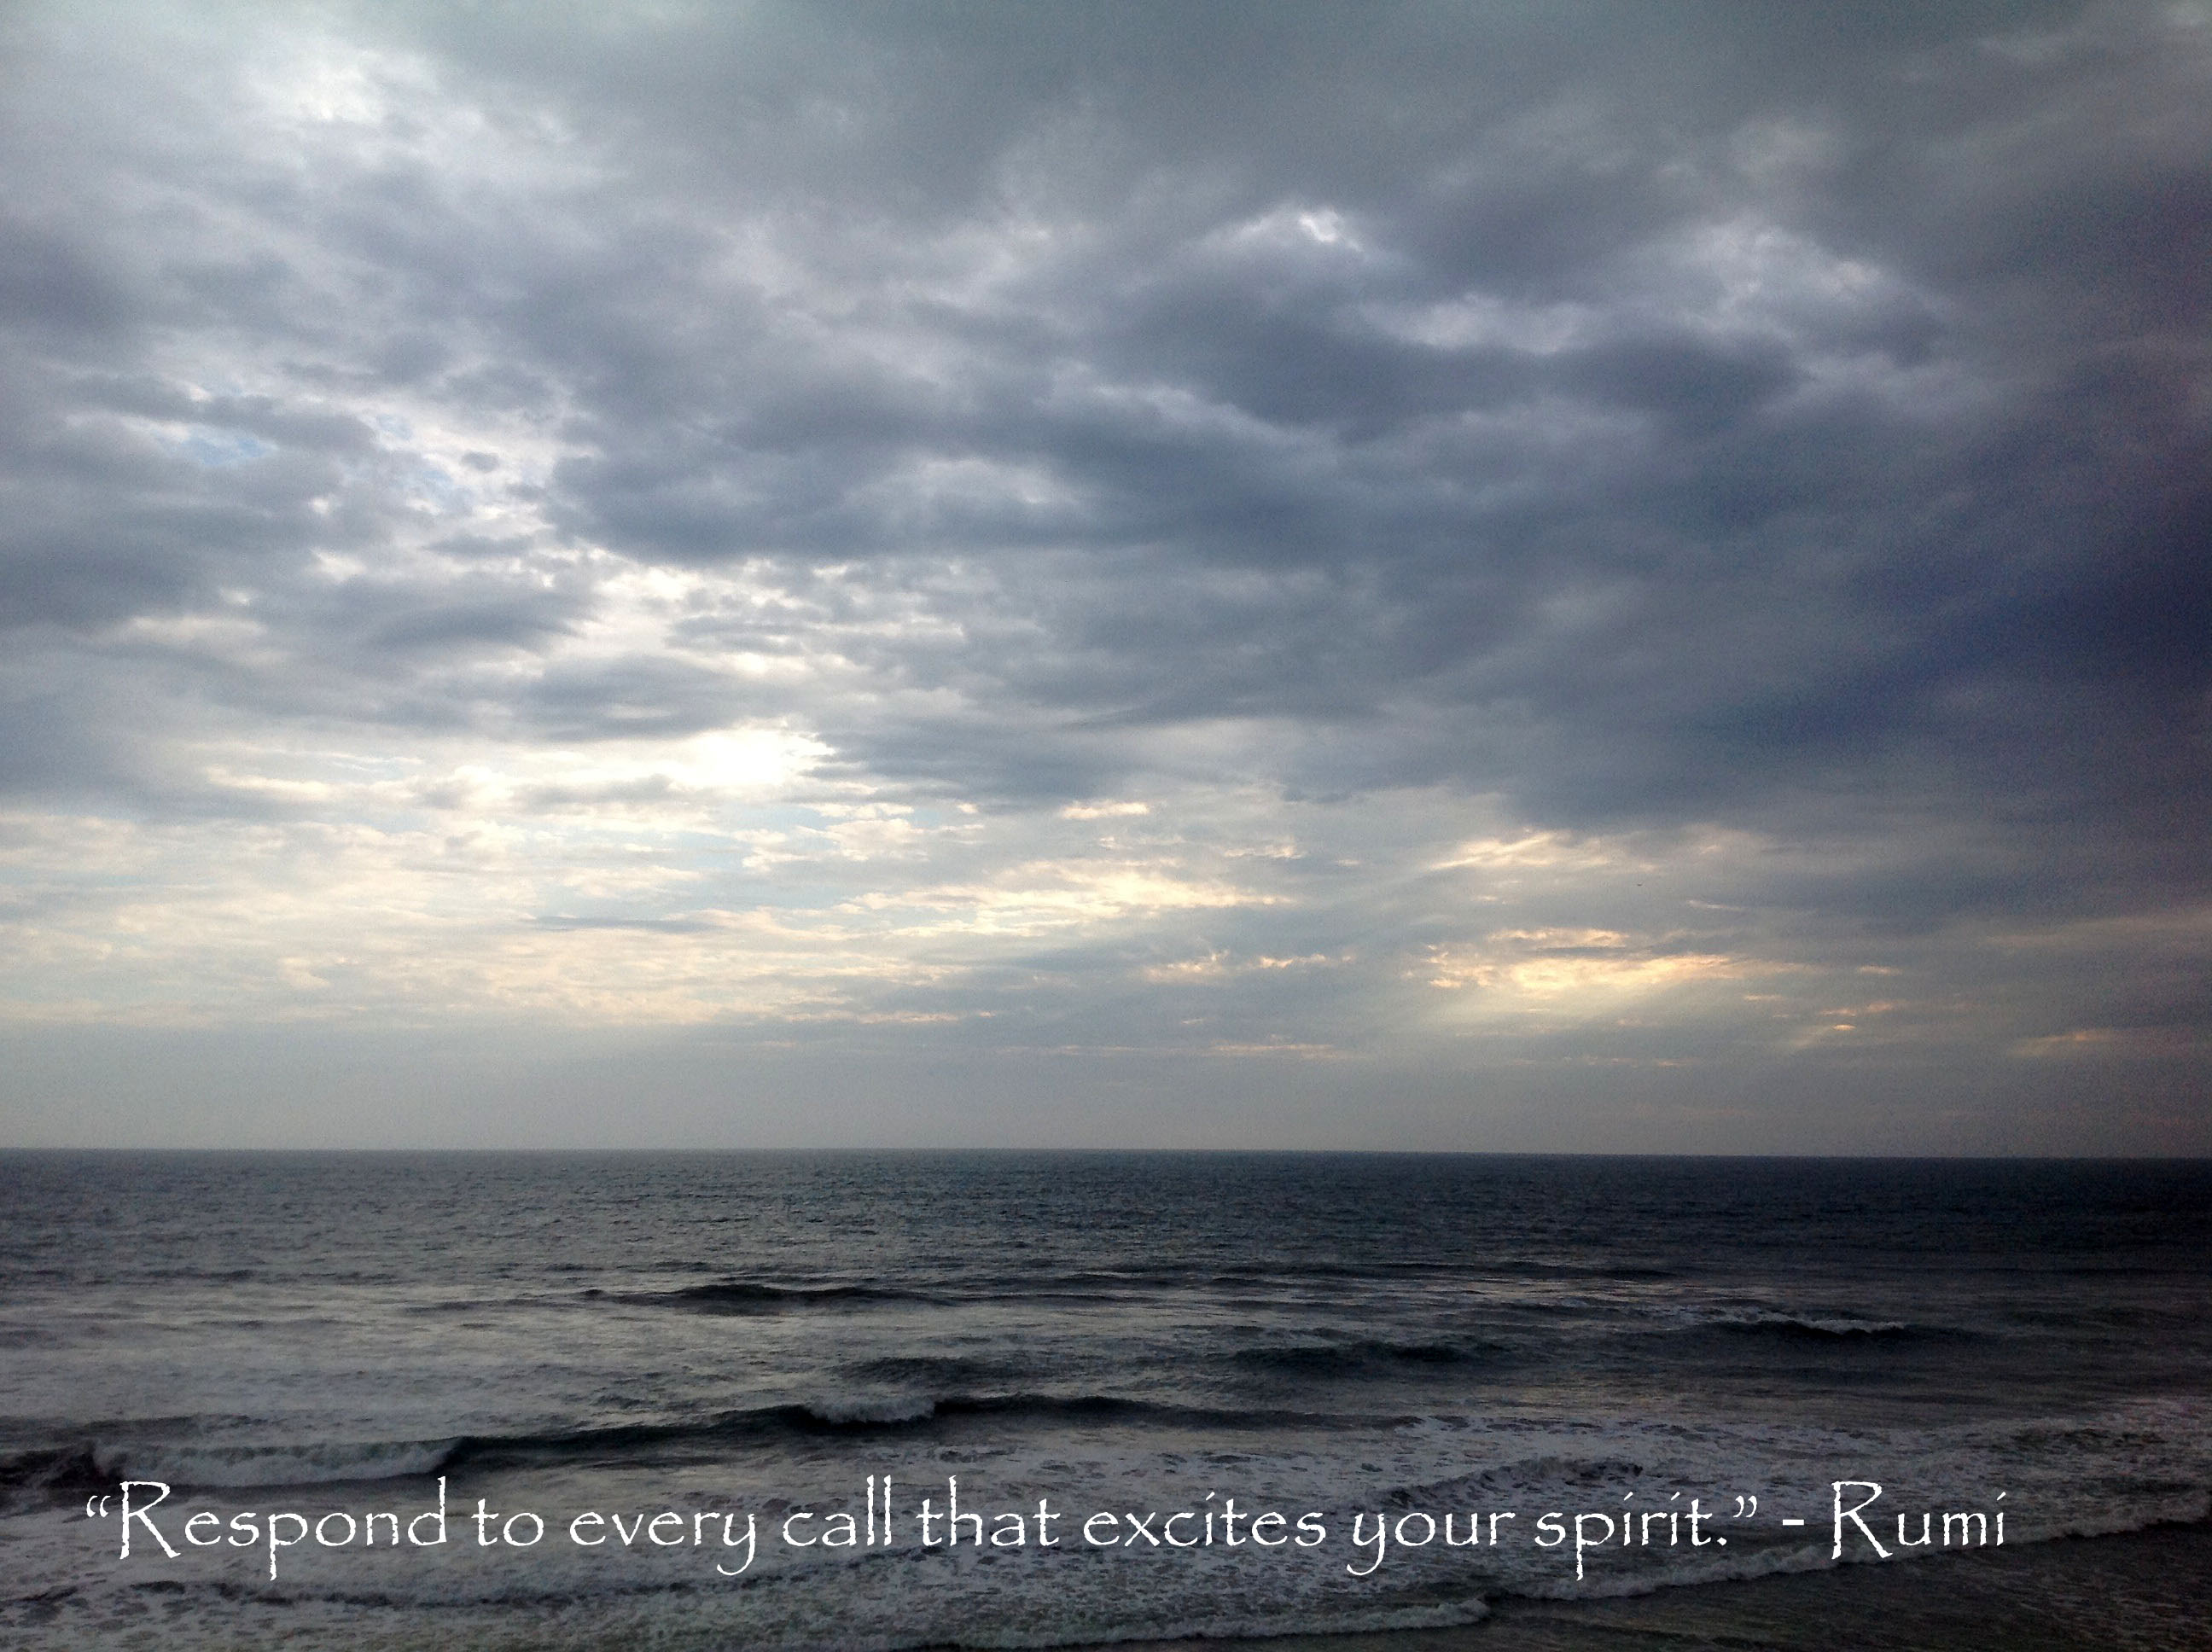 """""""Respond to every call that excites your spirit"""". - Rumi quote written on a photo of sunset over ocean."""